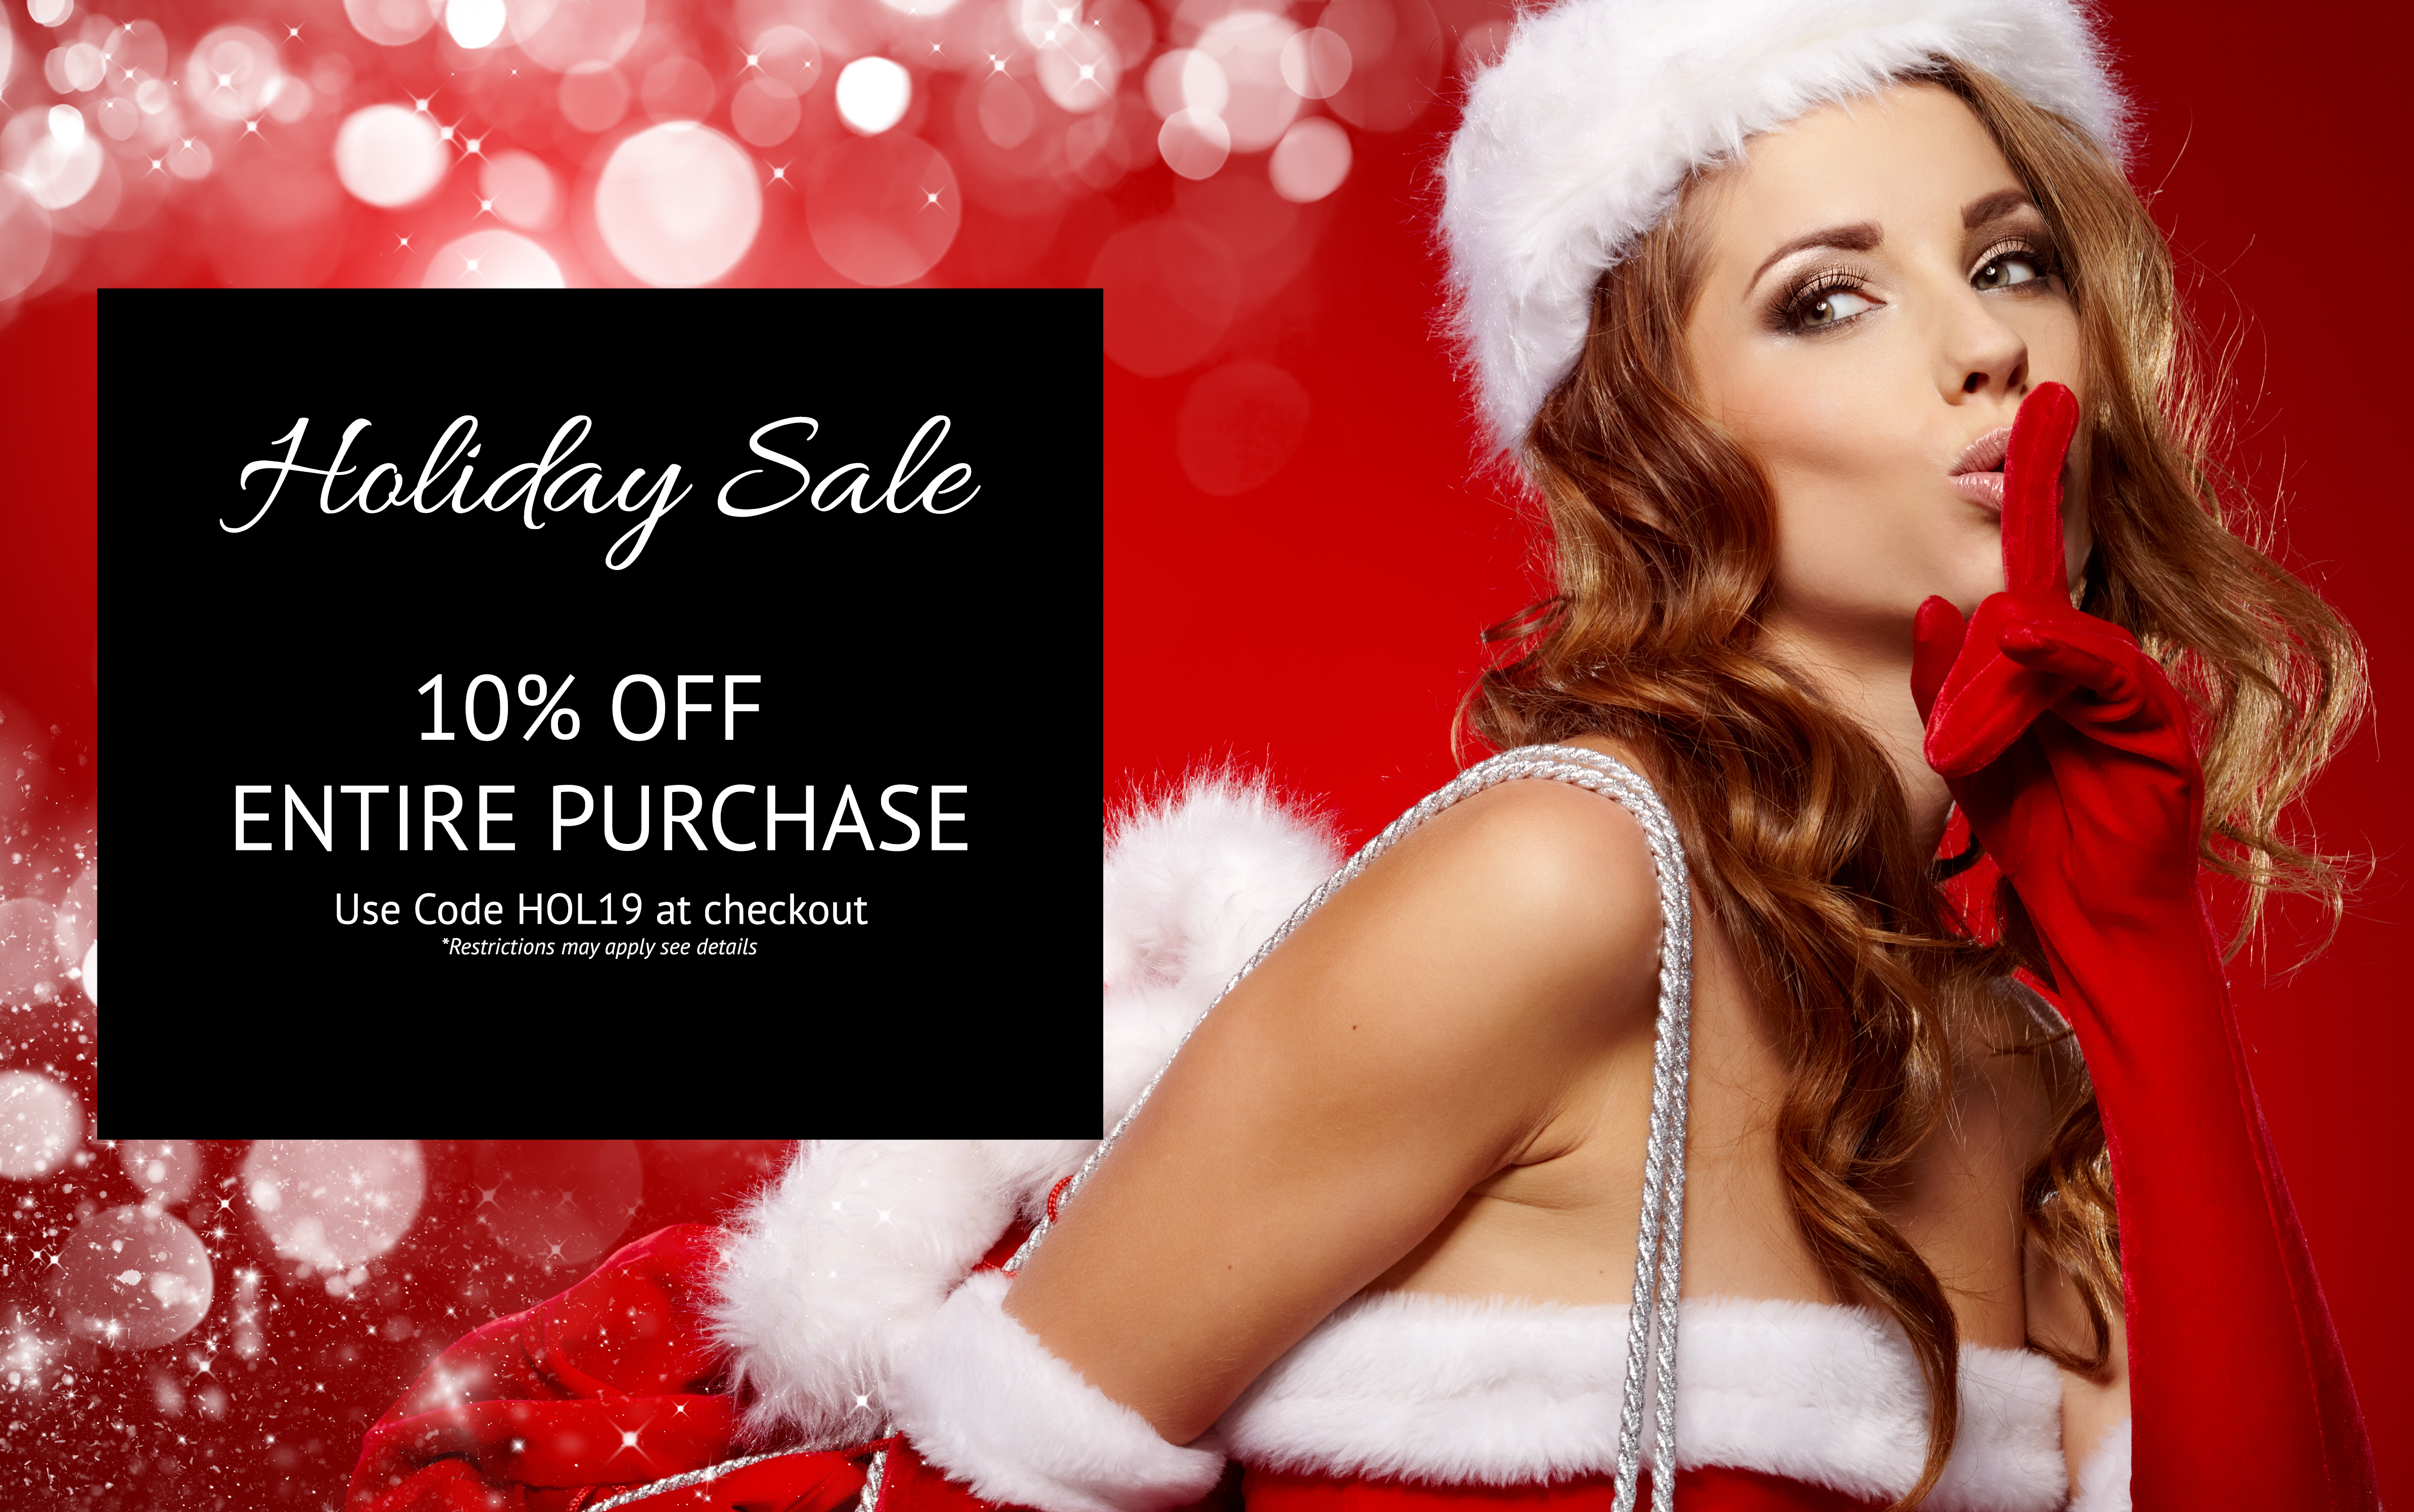 Holiday Sale Landing Page Image